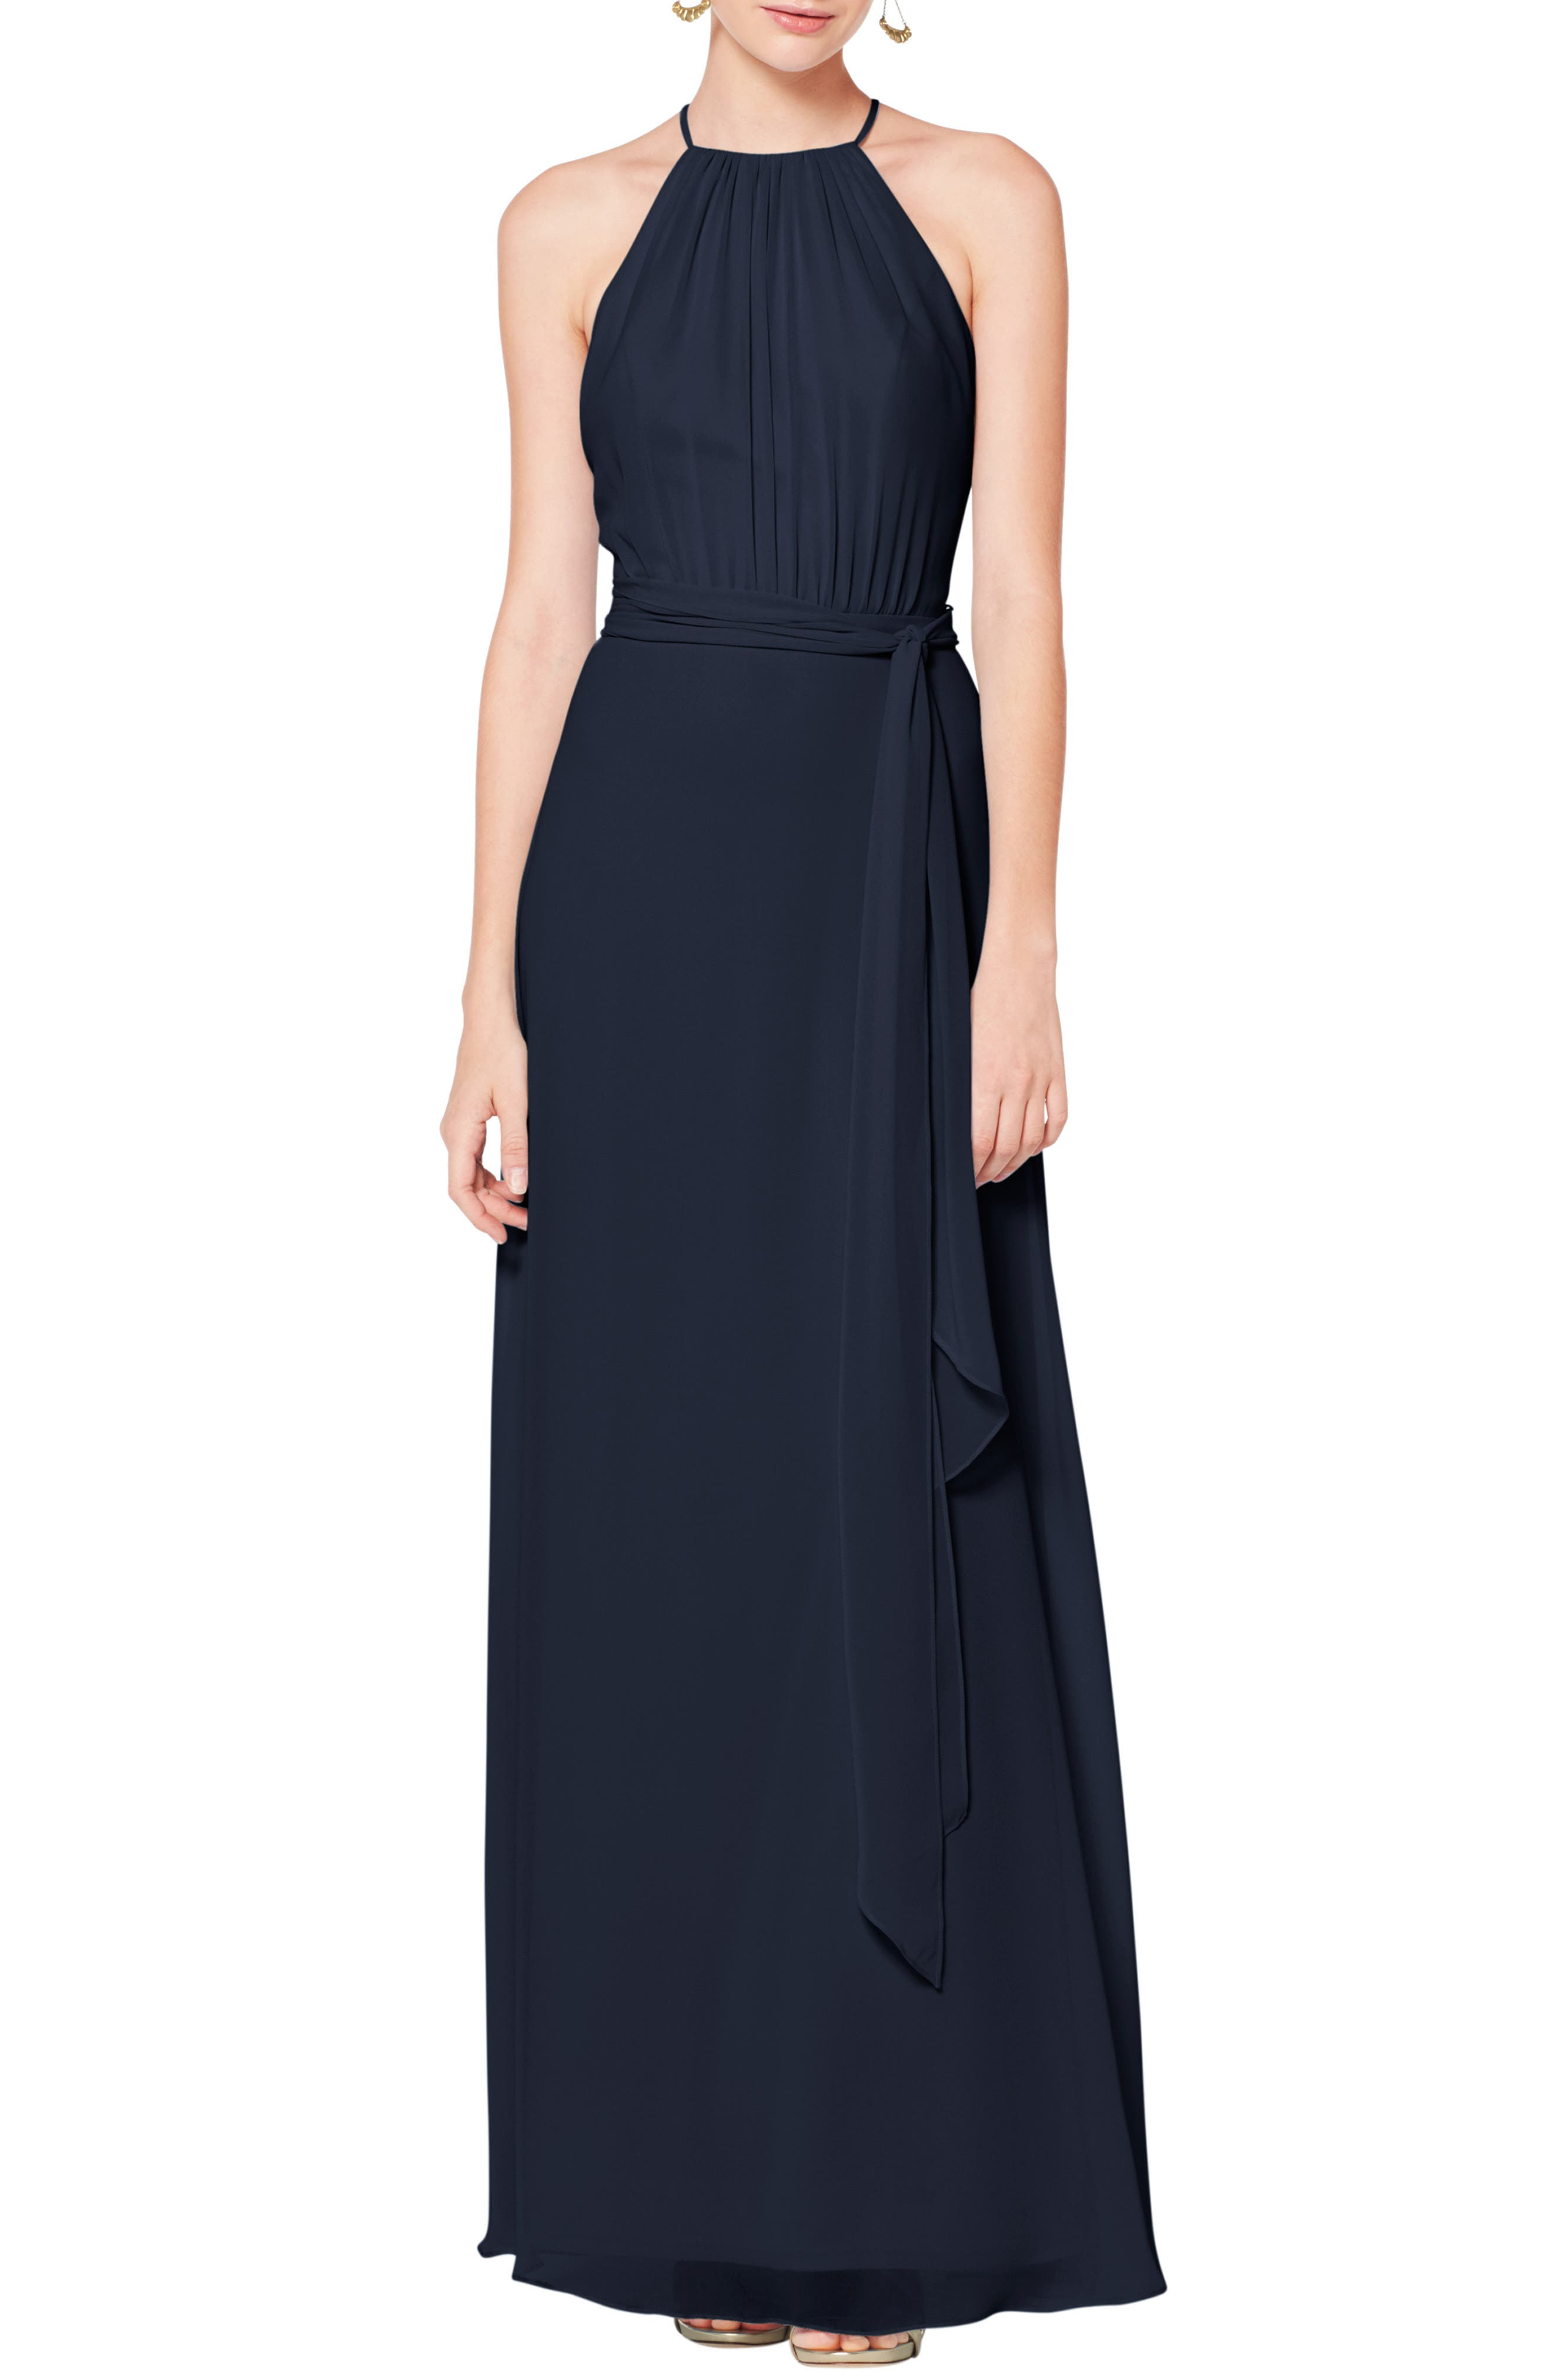 #LEVKOFF, Halter Neck Tie Detail Chiffon Gown, Main thumbnail 1, color, NAVY